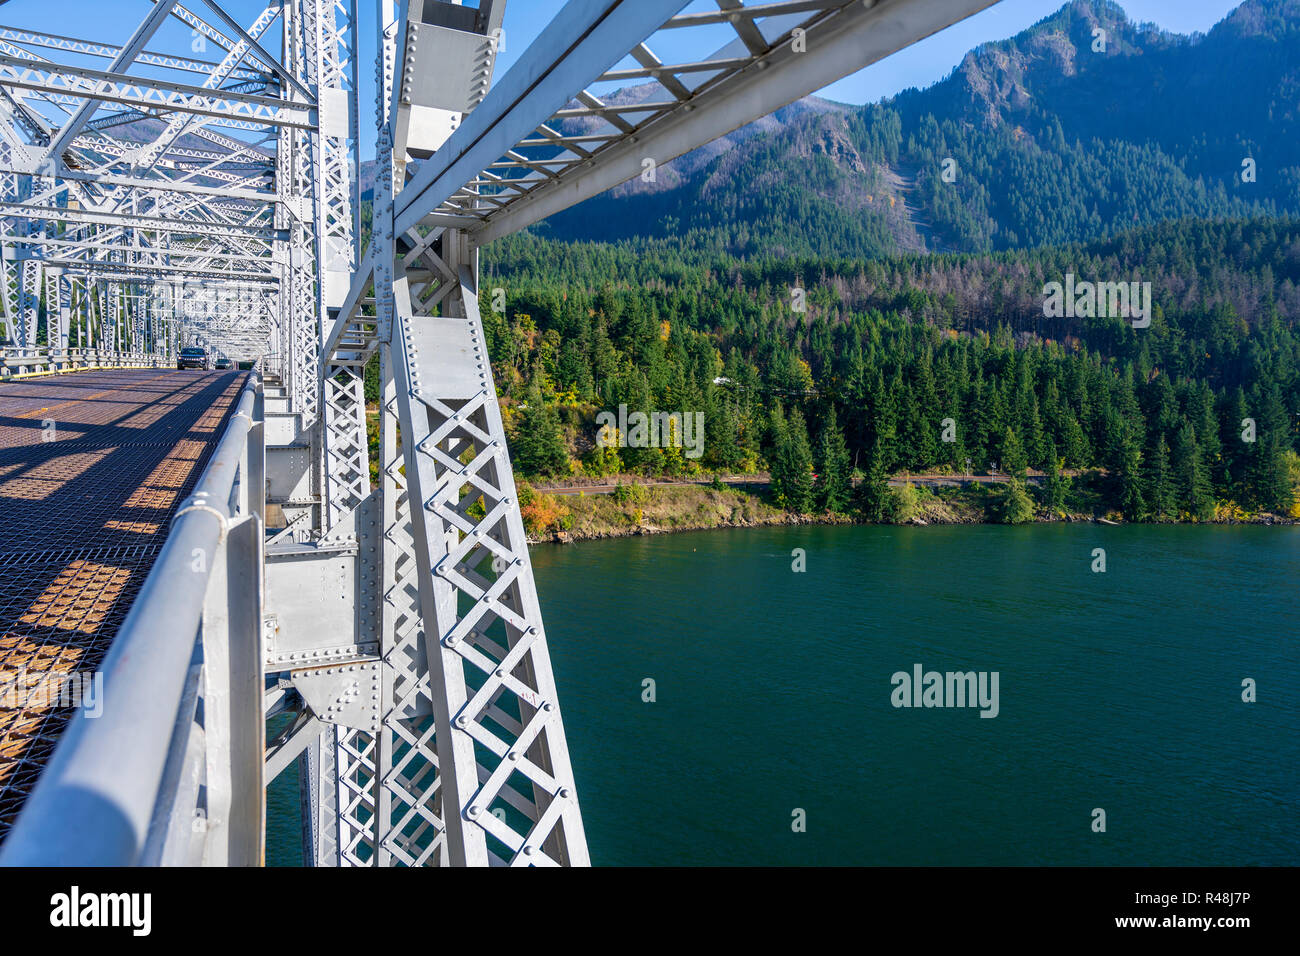 The truss Bridge of God over the Columbia River is located in a picturesque area of Columbia Gorge with hills and rocky mountains forest covered - an  Stock Photo